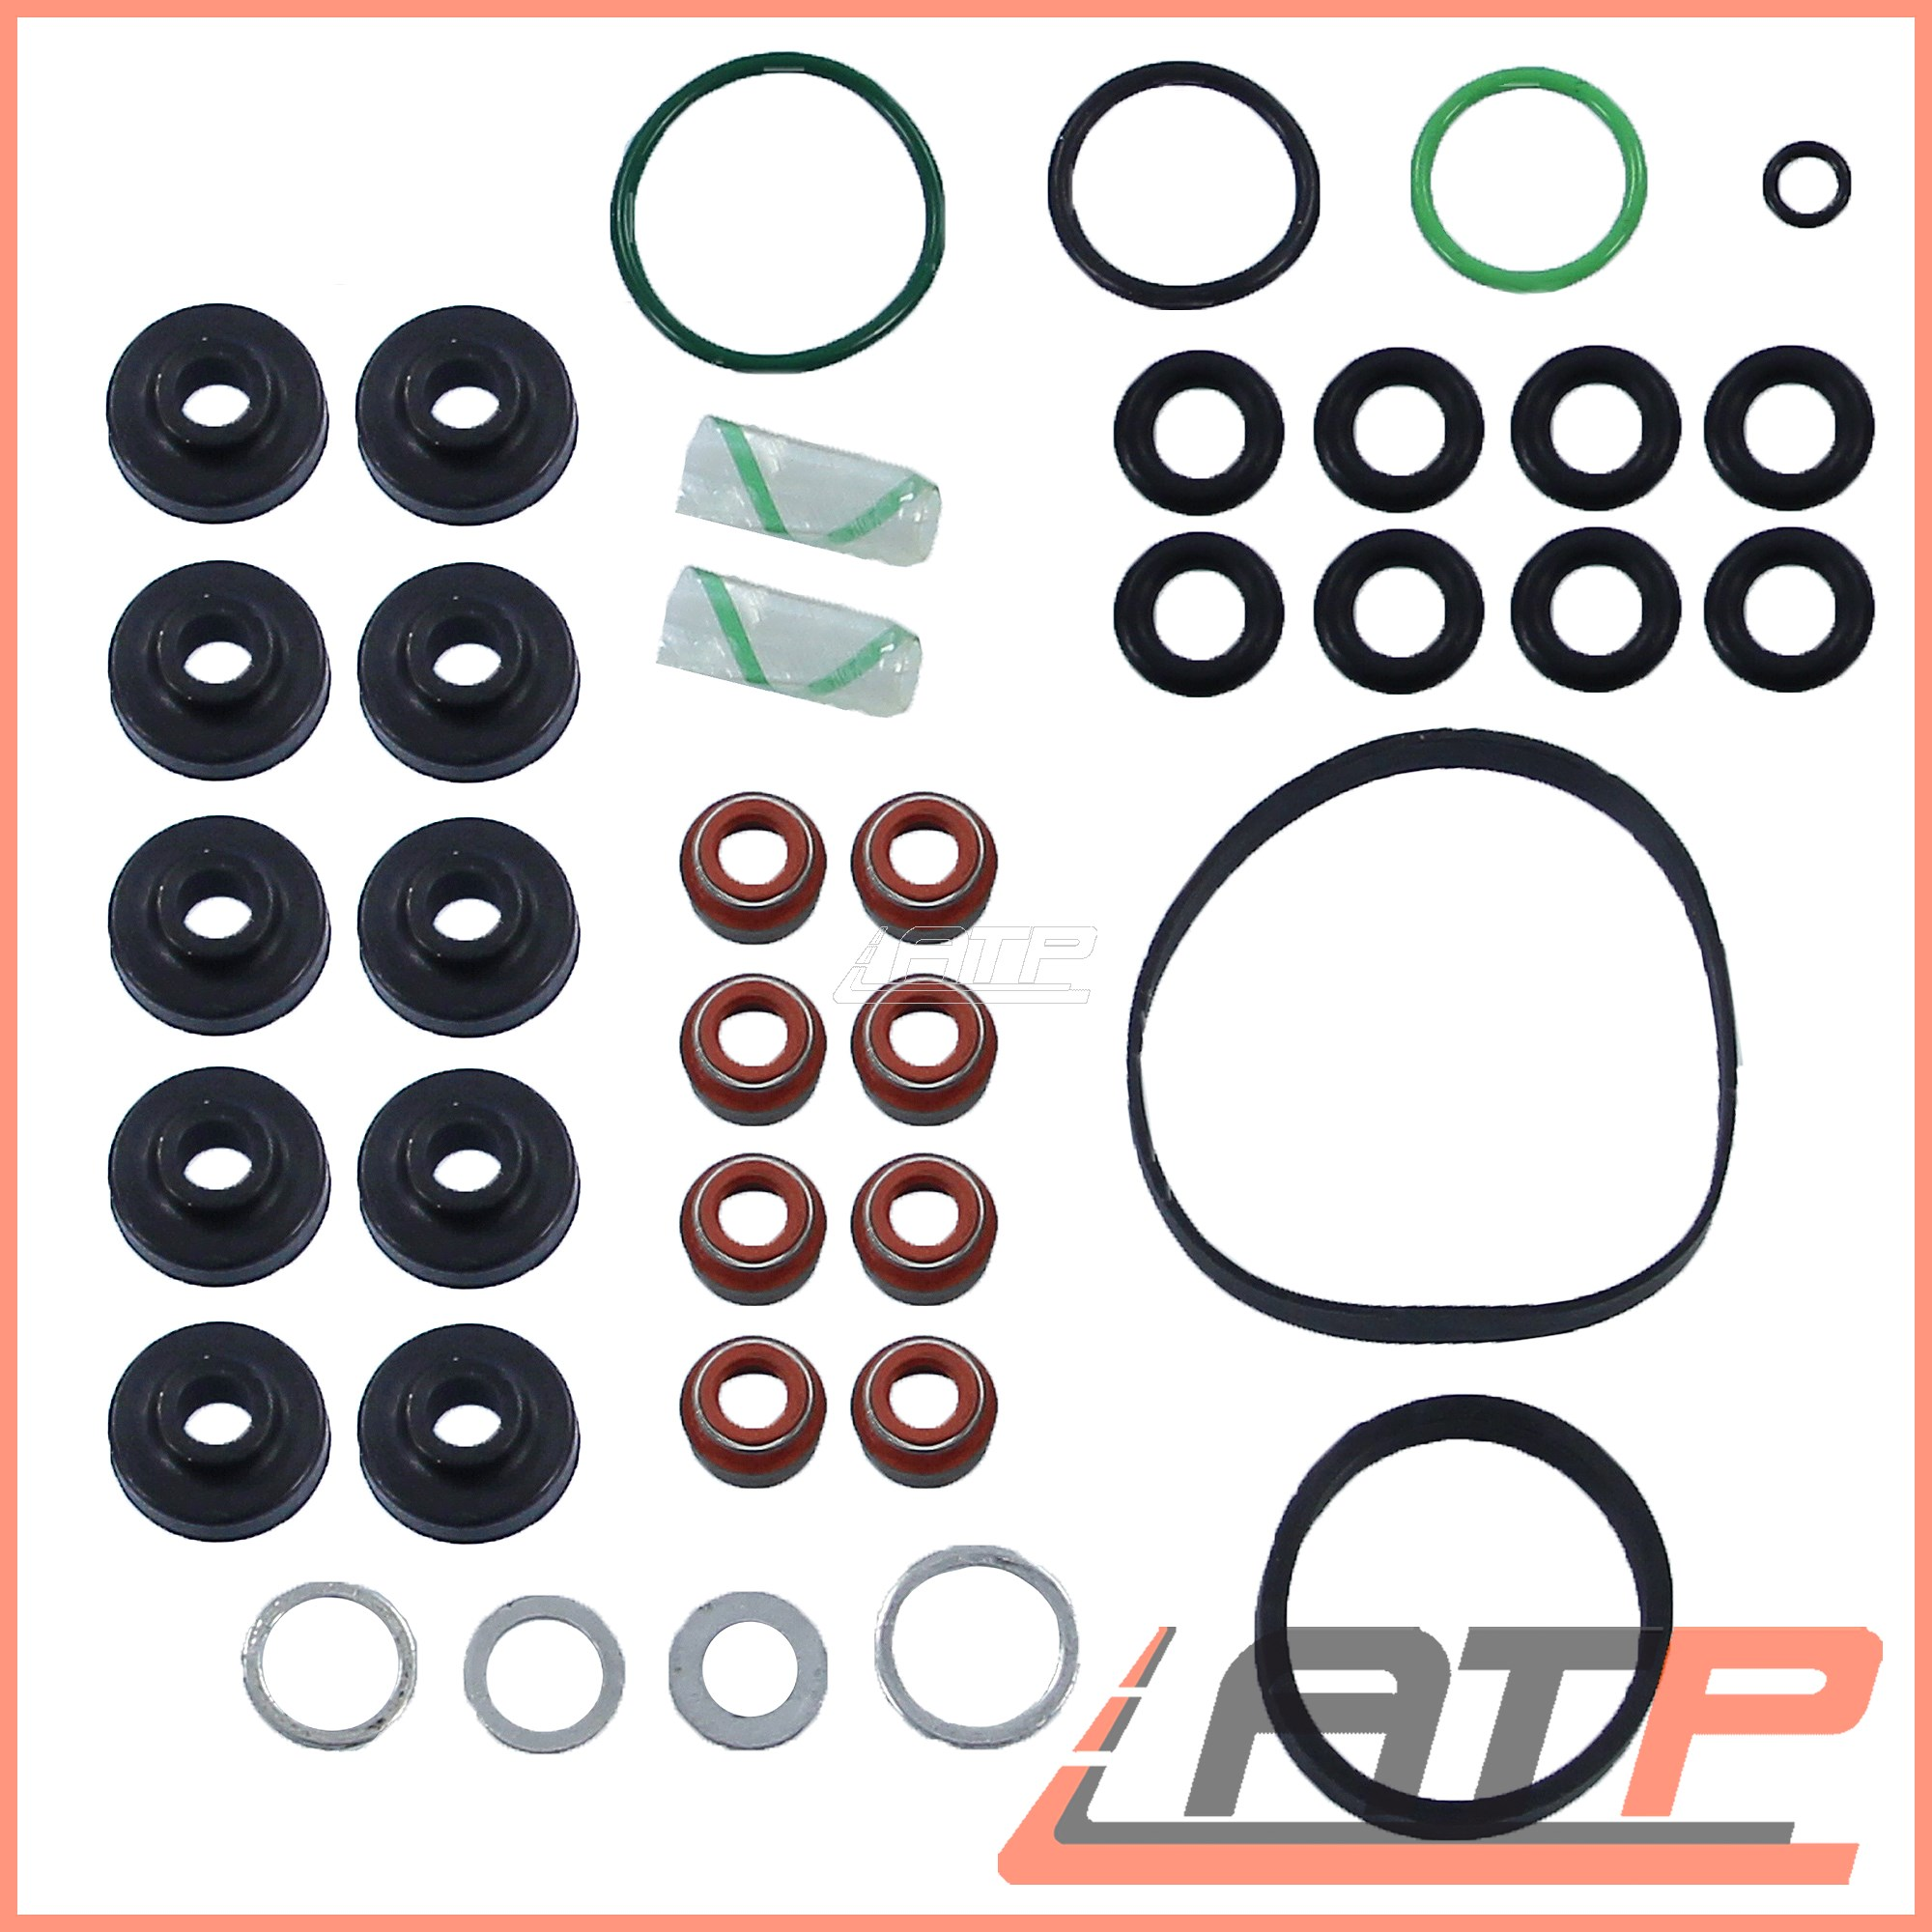 BOLT KIT 10-PART 32696779 CYLINDER HEAD GASKET SEALING SET